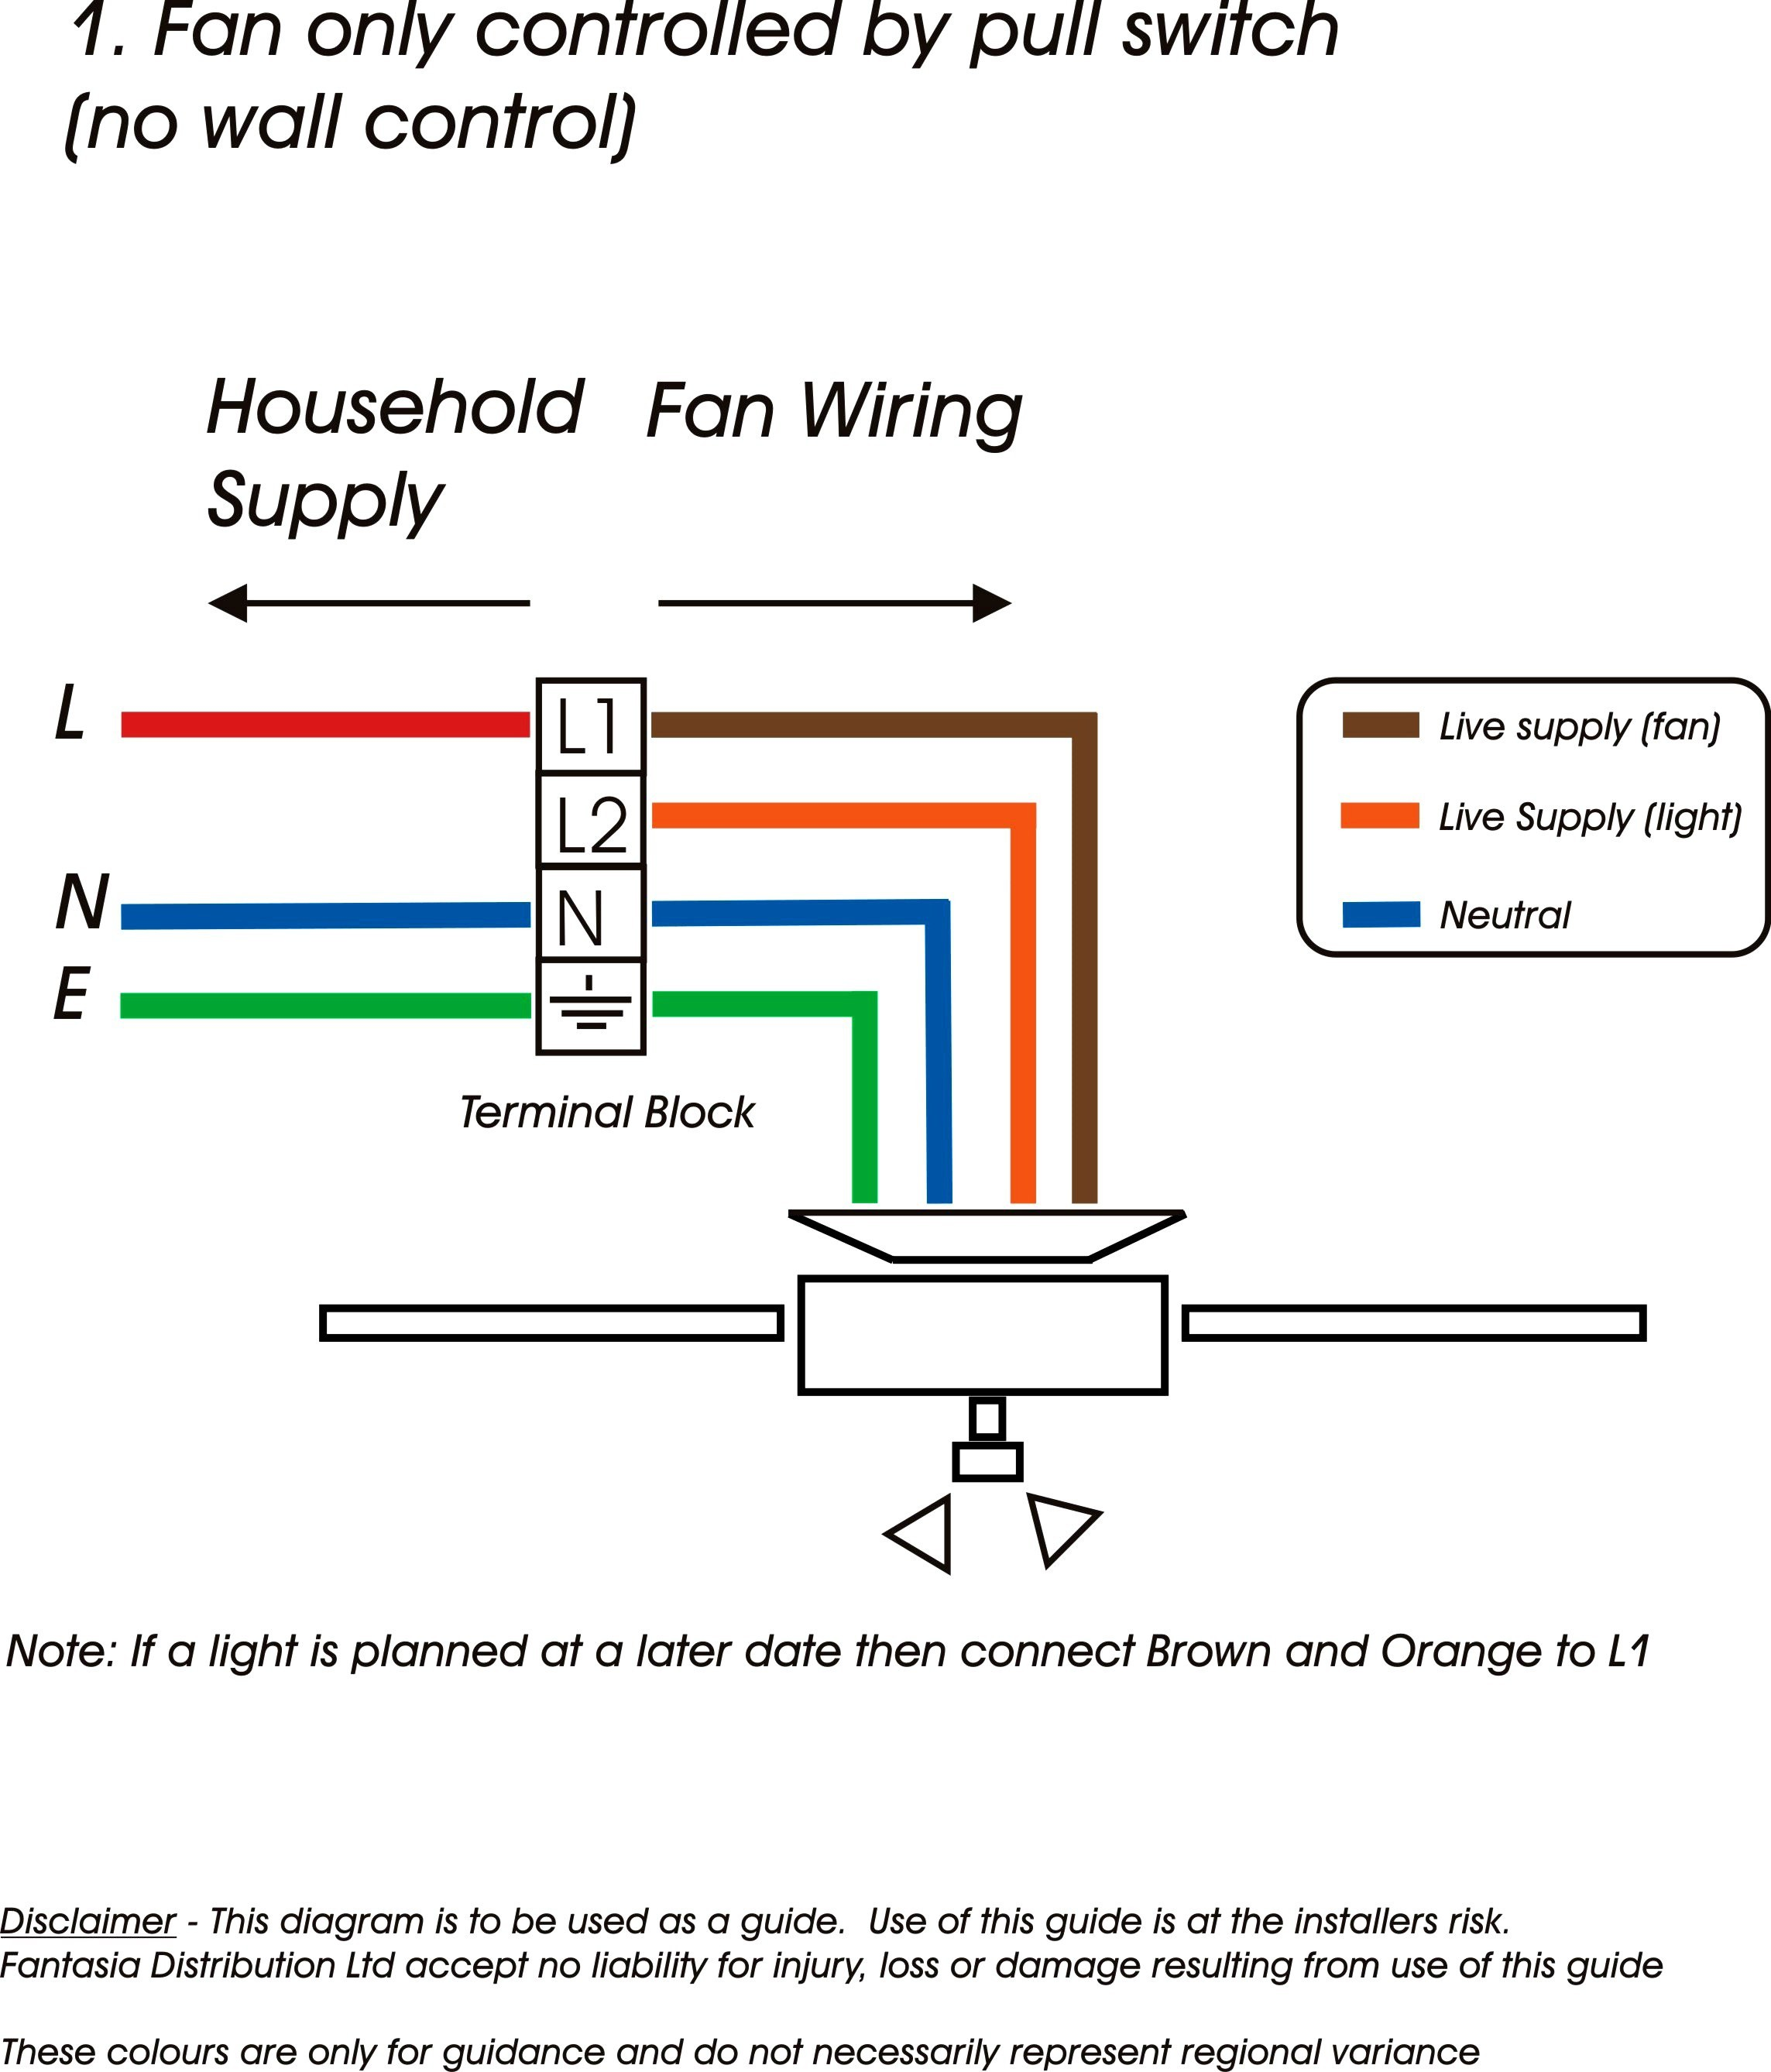 Wiring Diagram For Ceiling Fan With Wall Switch Easy The Eye